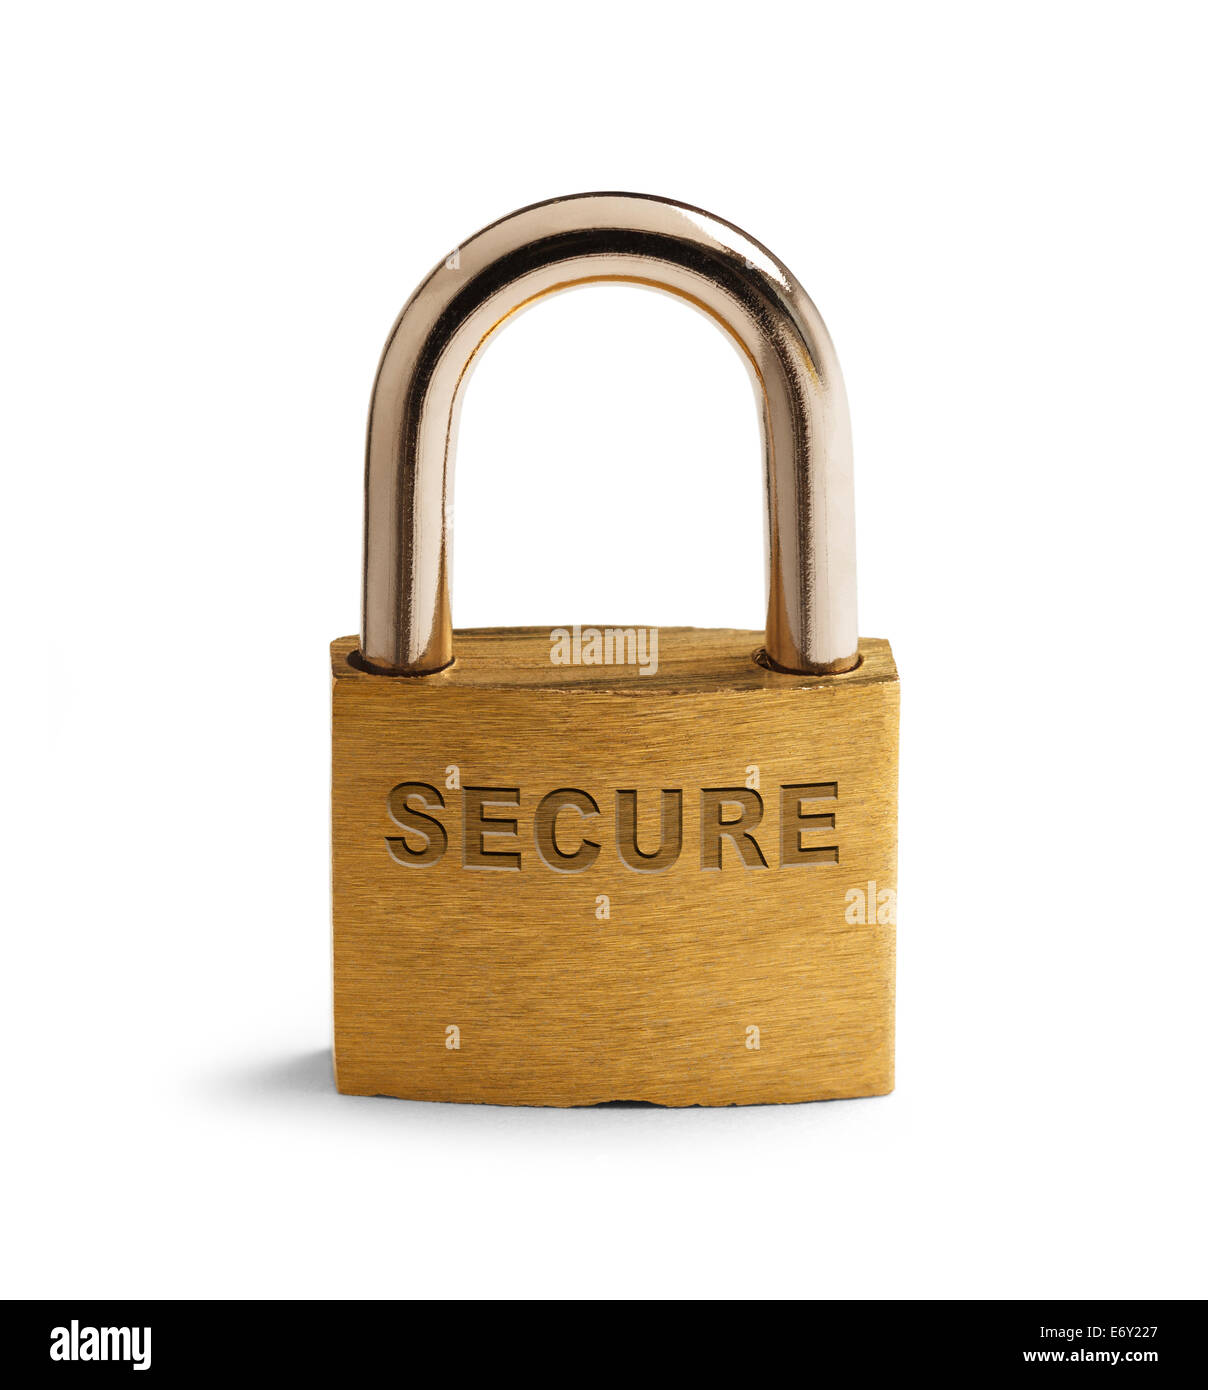 Brass Security Padlock Closed and Isolated on White Background. - Stock Image